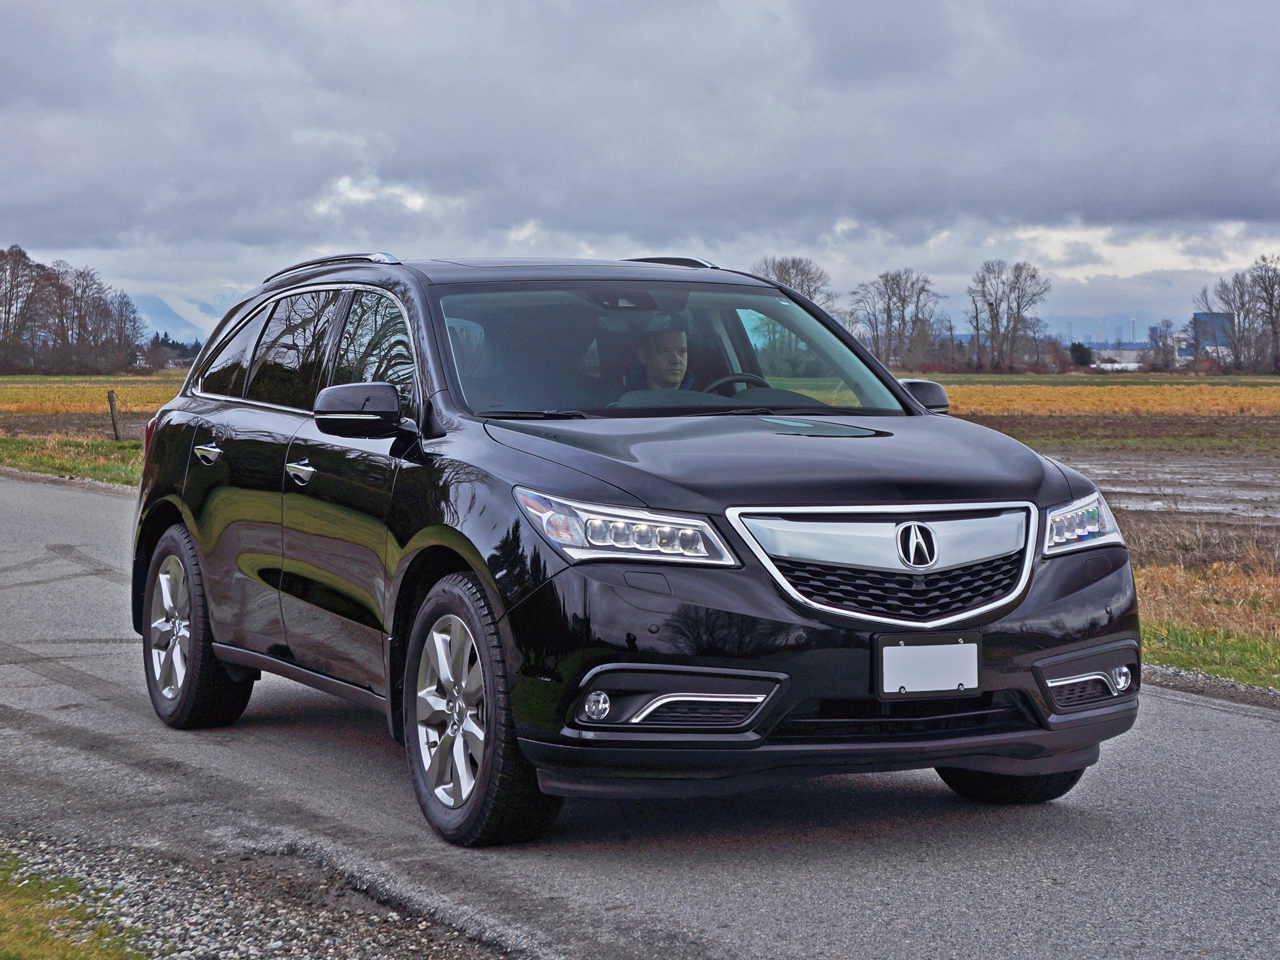 2016 acura mdx sh awd elite road test review carcostcanada. Black Bedroom Furniture Sets. Home Design Ideas